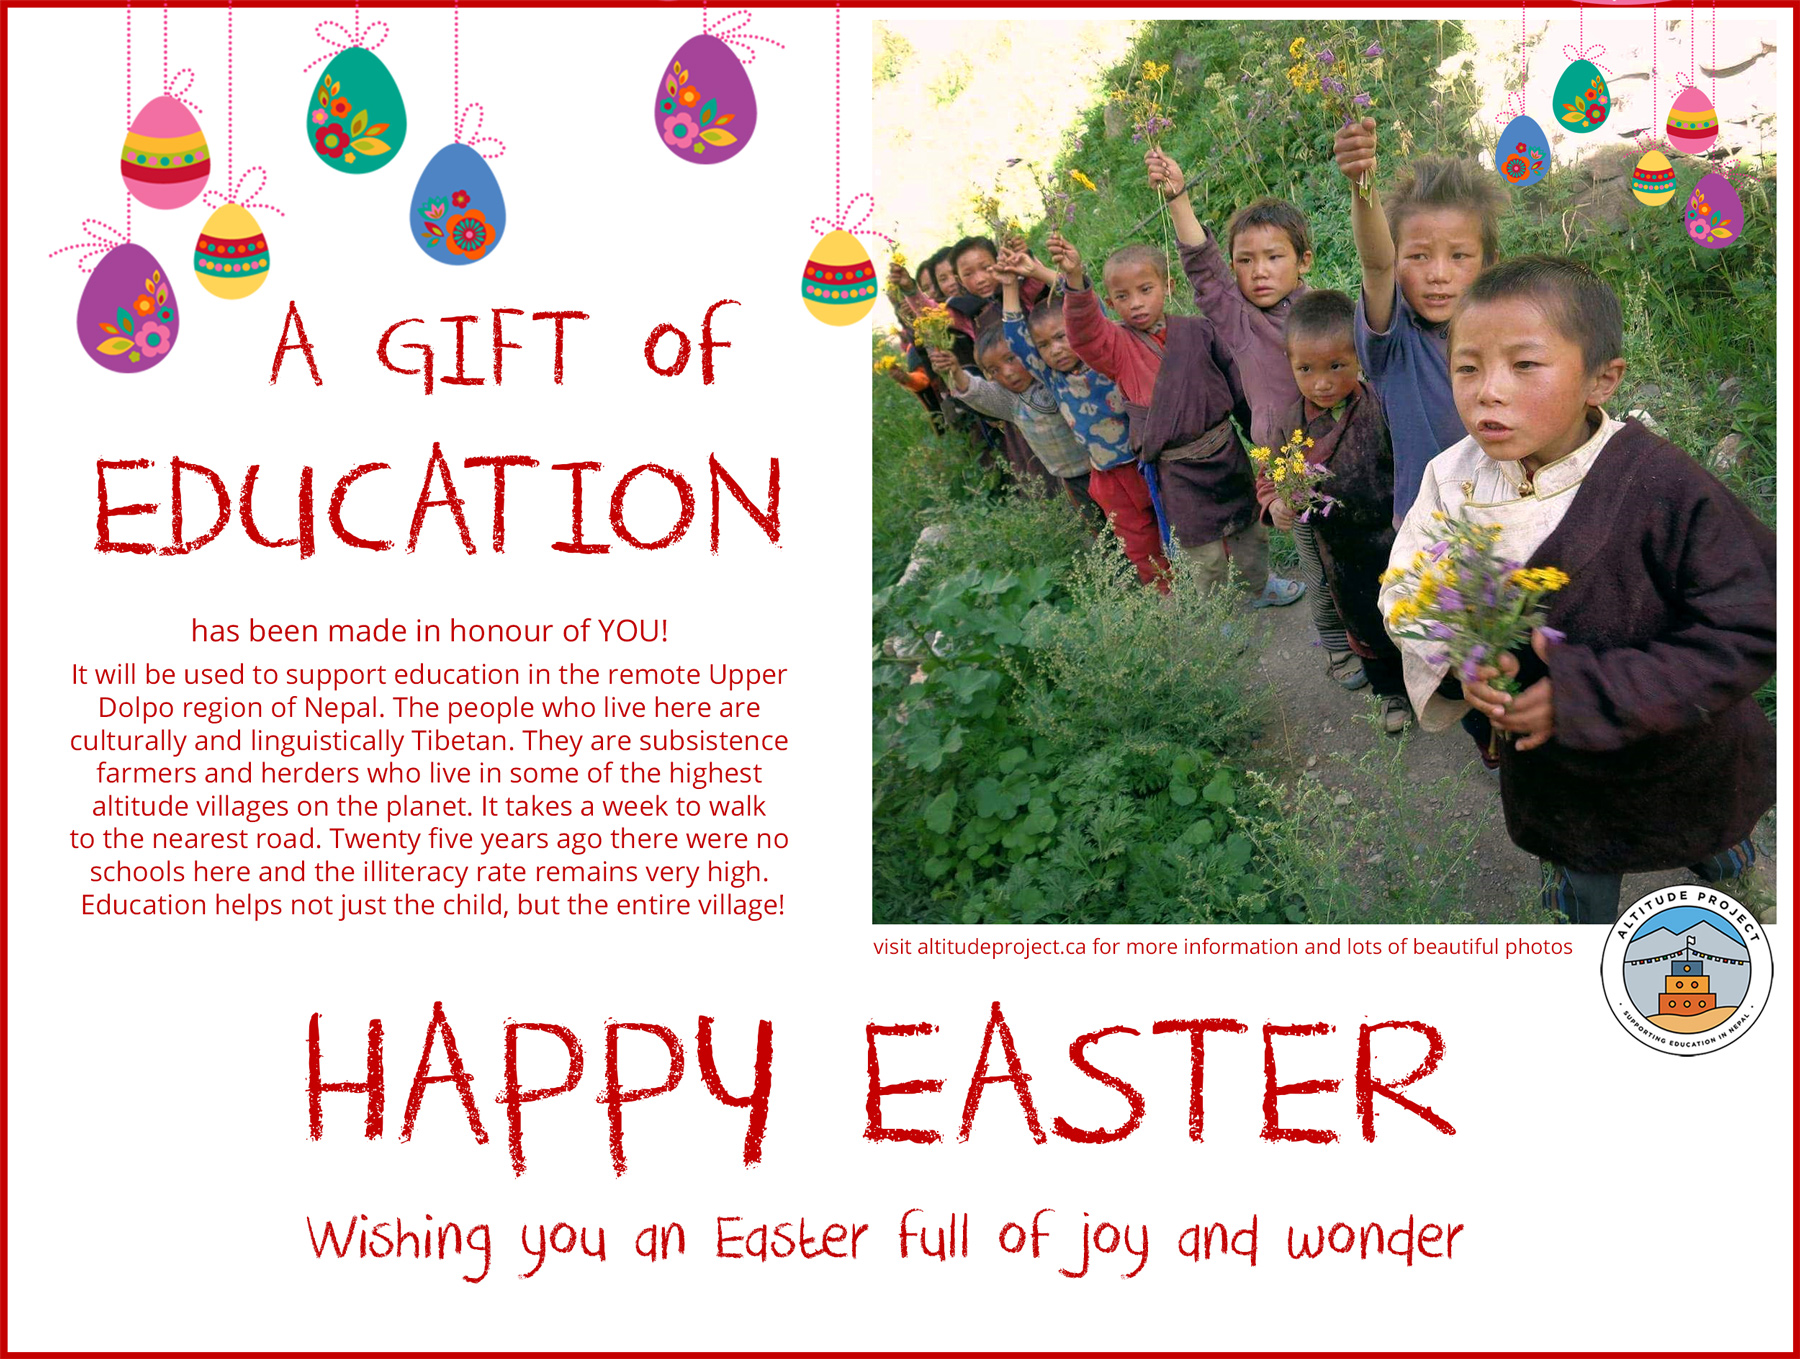 Happy-Easter-Altitude-Project-1800